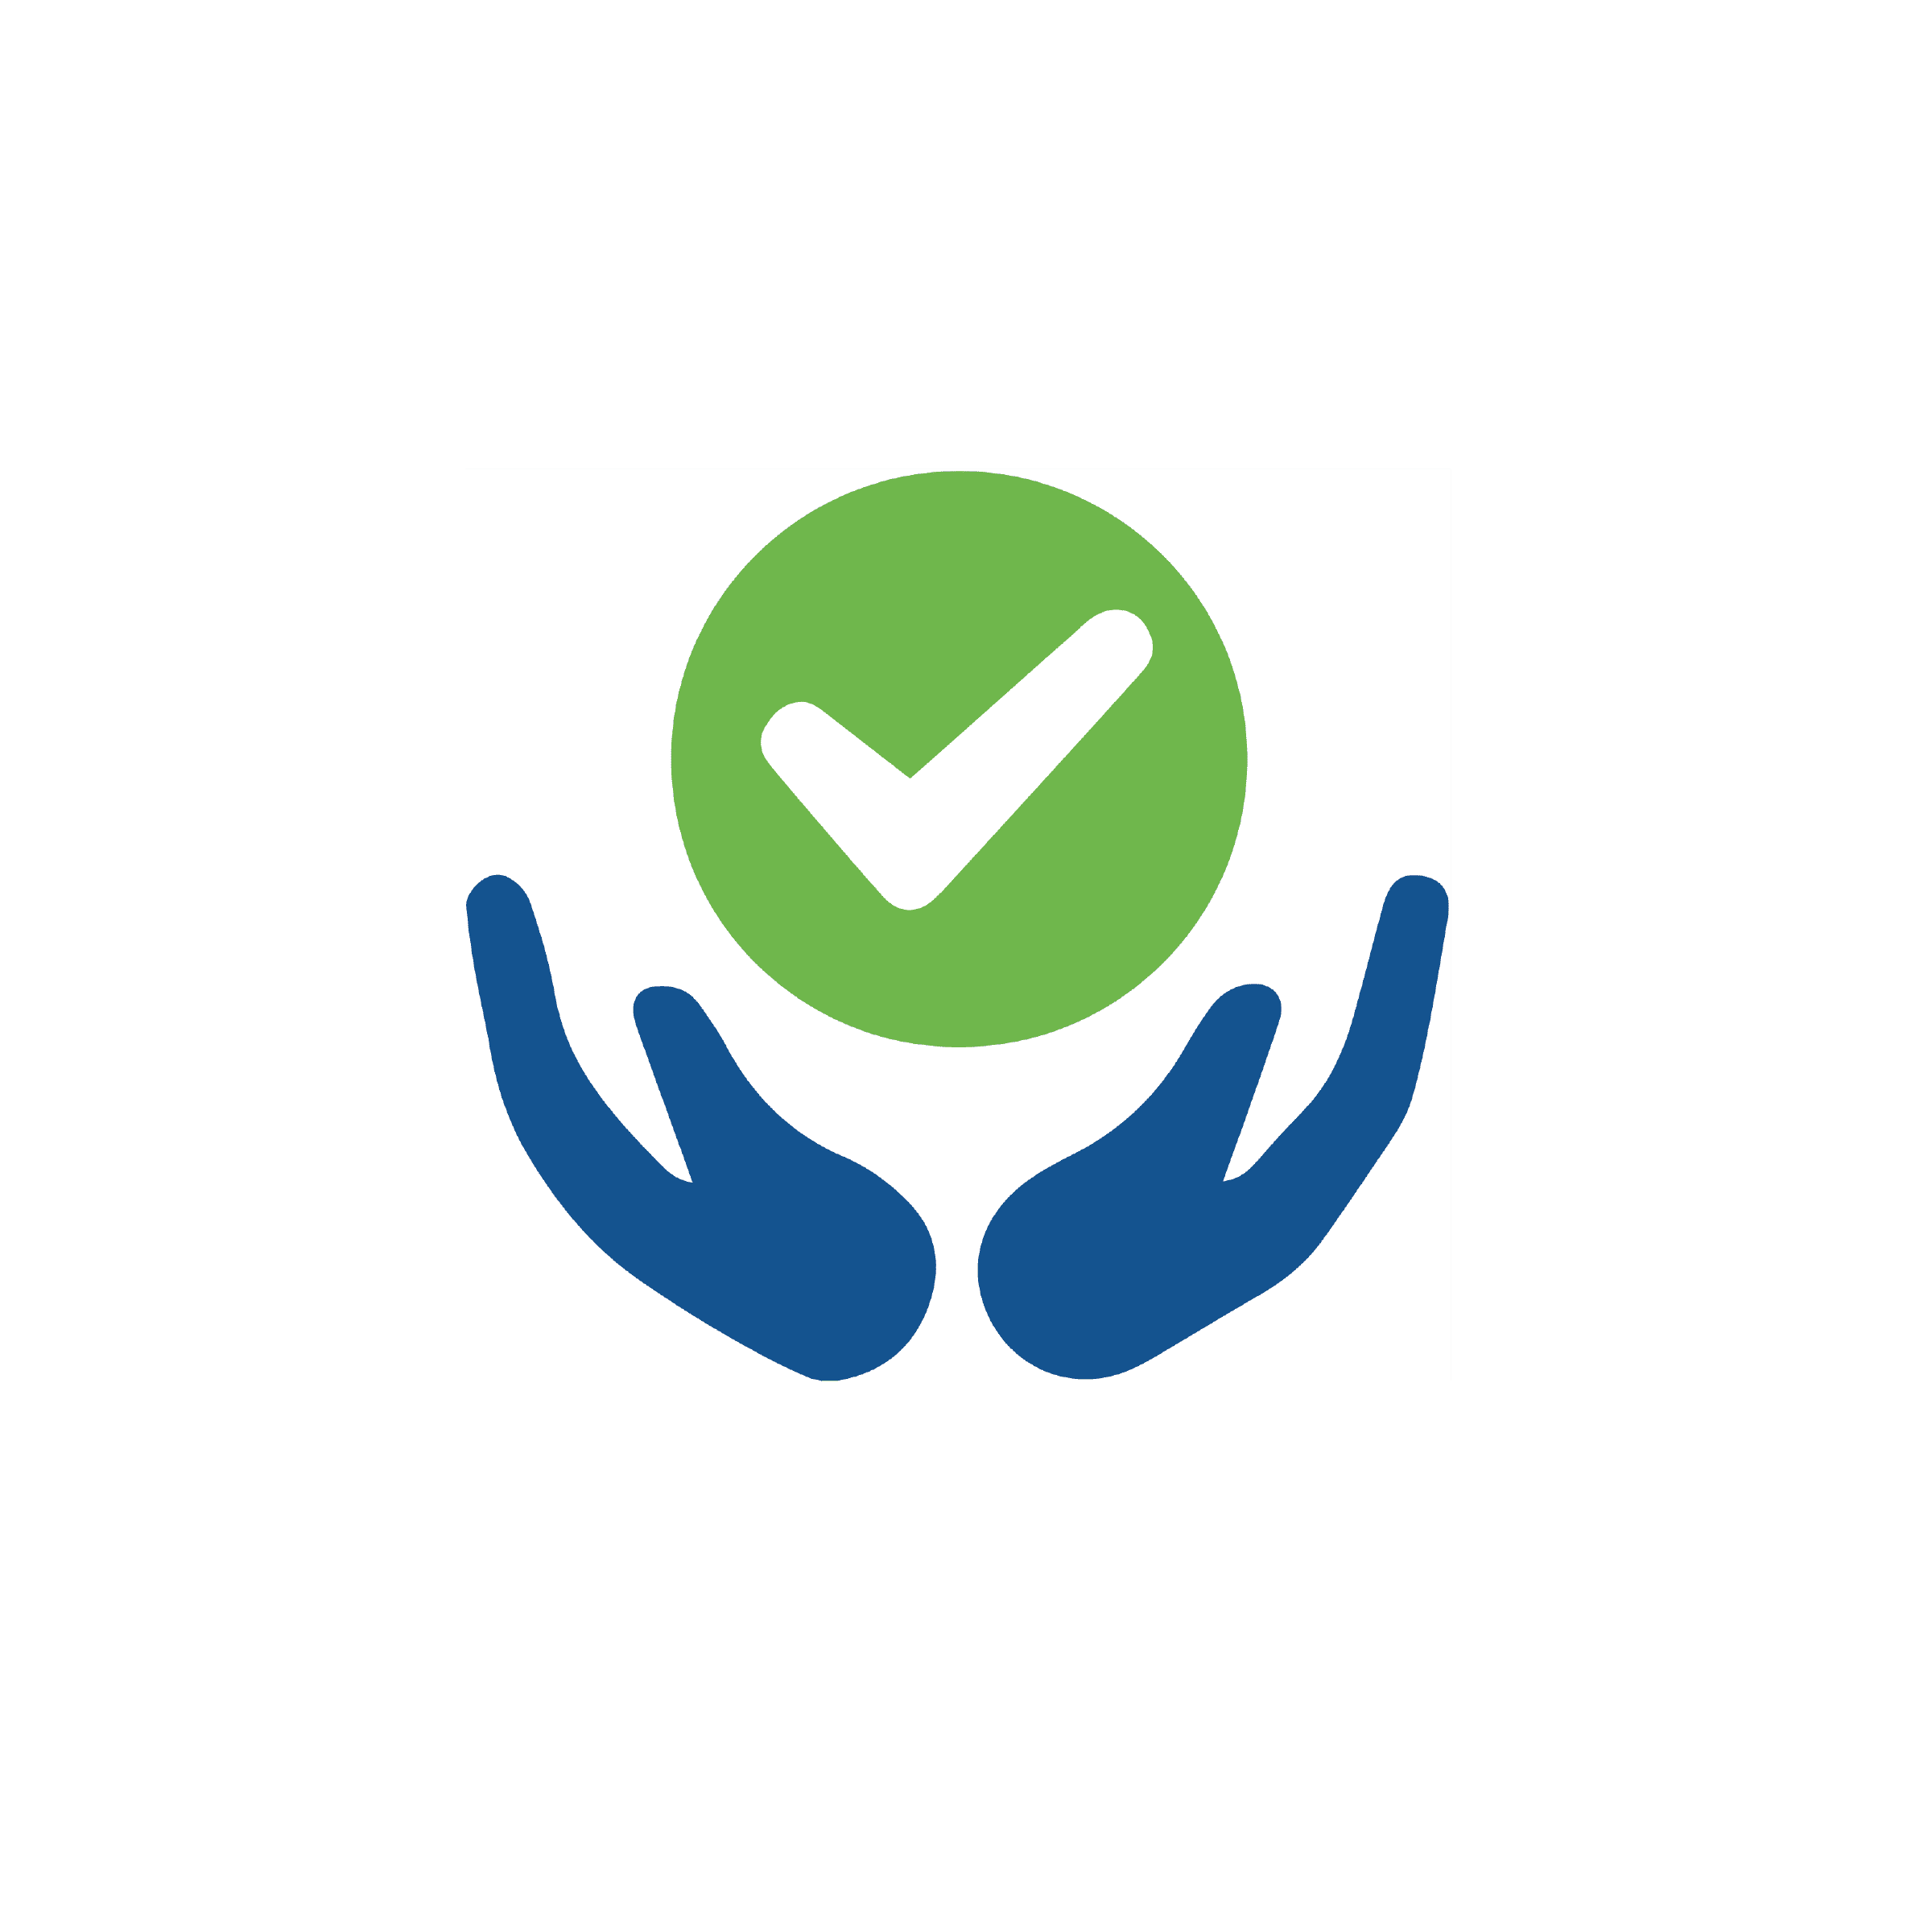 qualified support icon